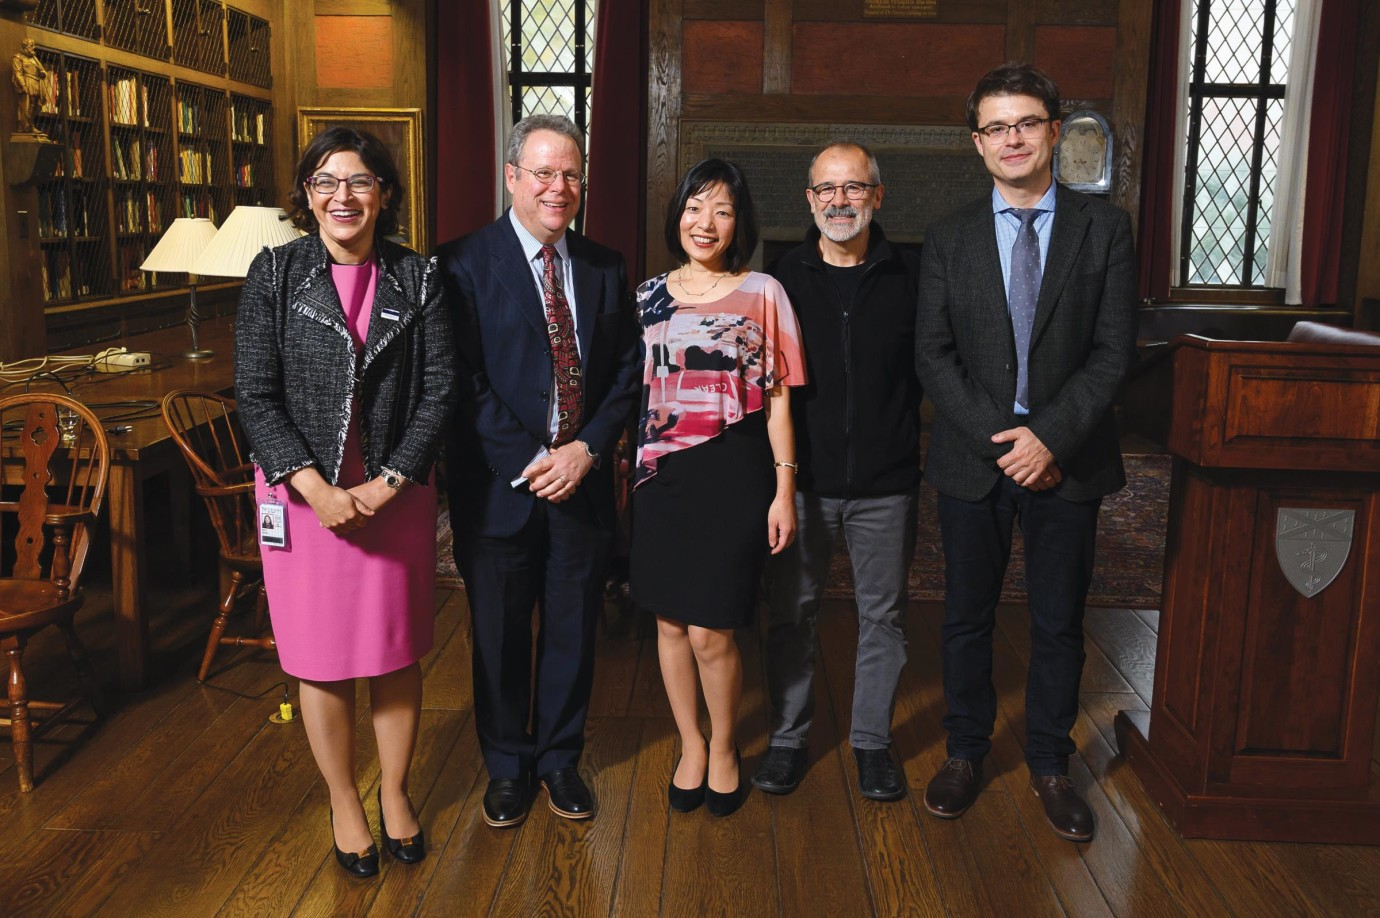 At a ceremony celebrating their selection to the National Academy of Medicine, (l-r): Nita Ahuja, Rafael Pérez-Escamilla, Akiko Iwasaki, Jorge Galán, and Nenad Sestan. Absent from photo: David Schatz.